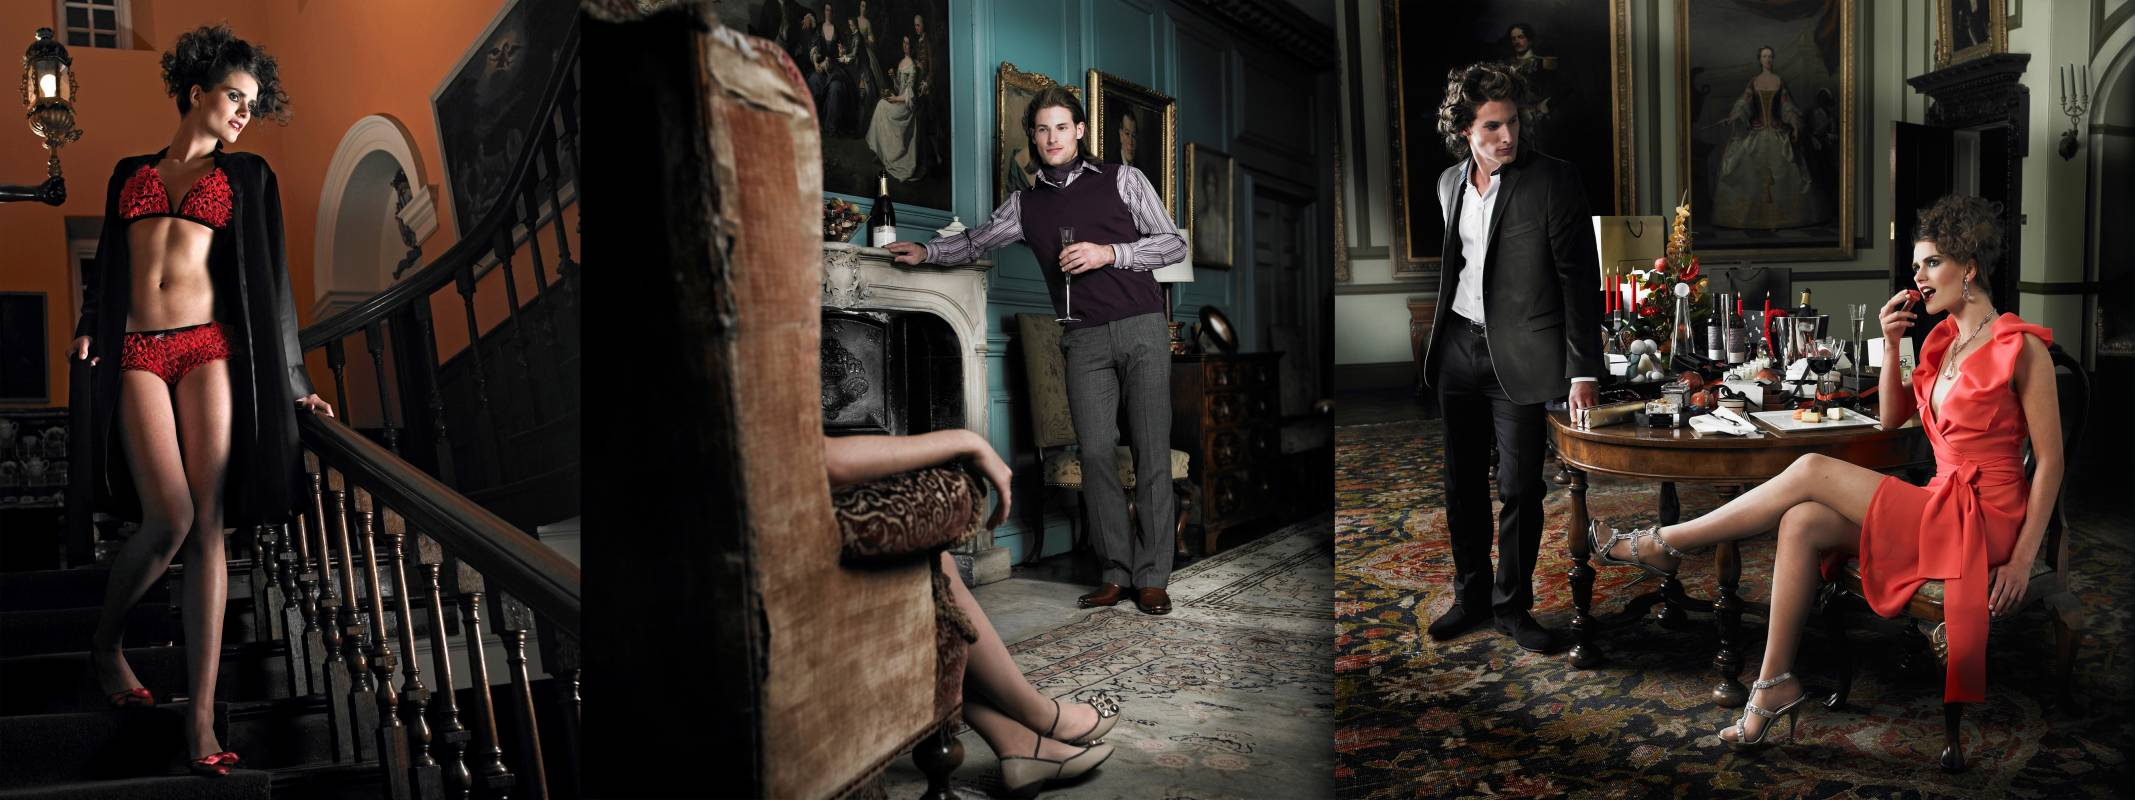 Stately home on location lingerie photoshoot with male and female models with luxury styling